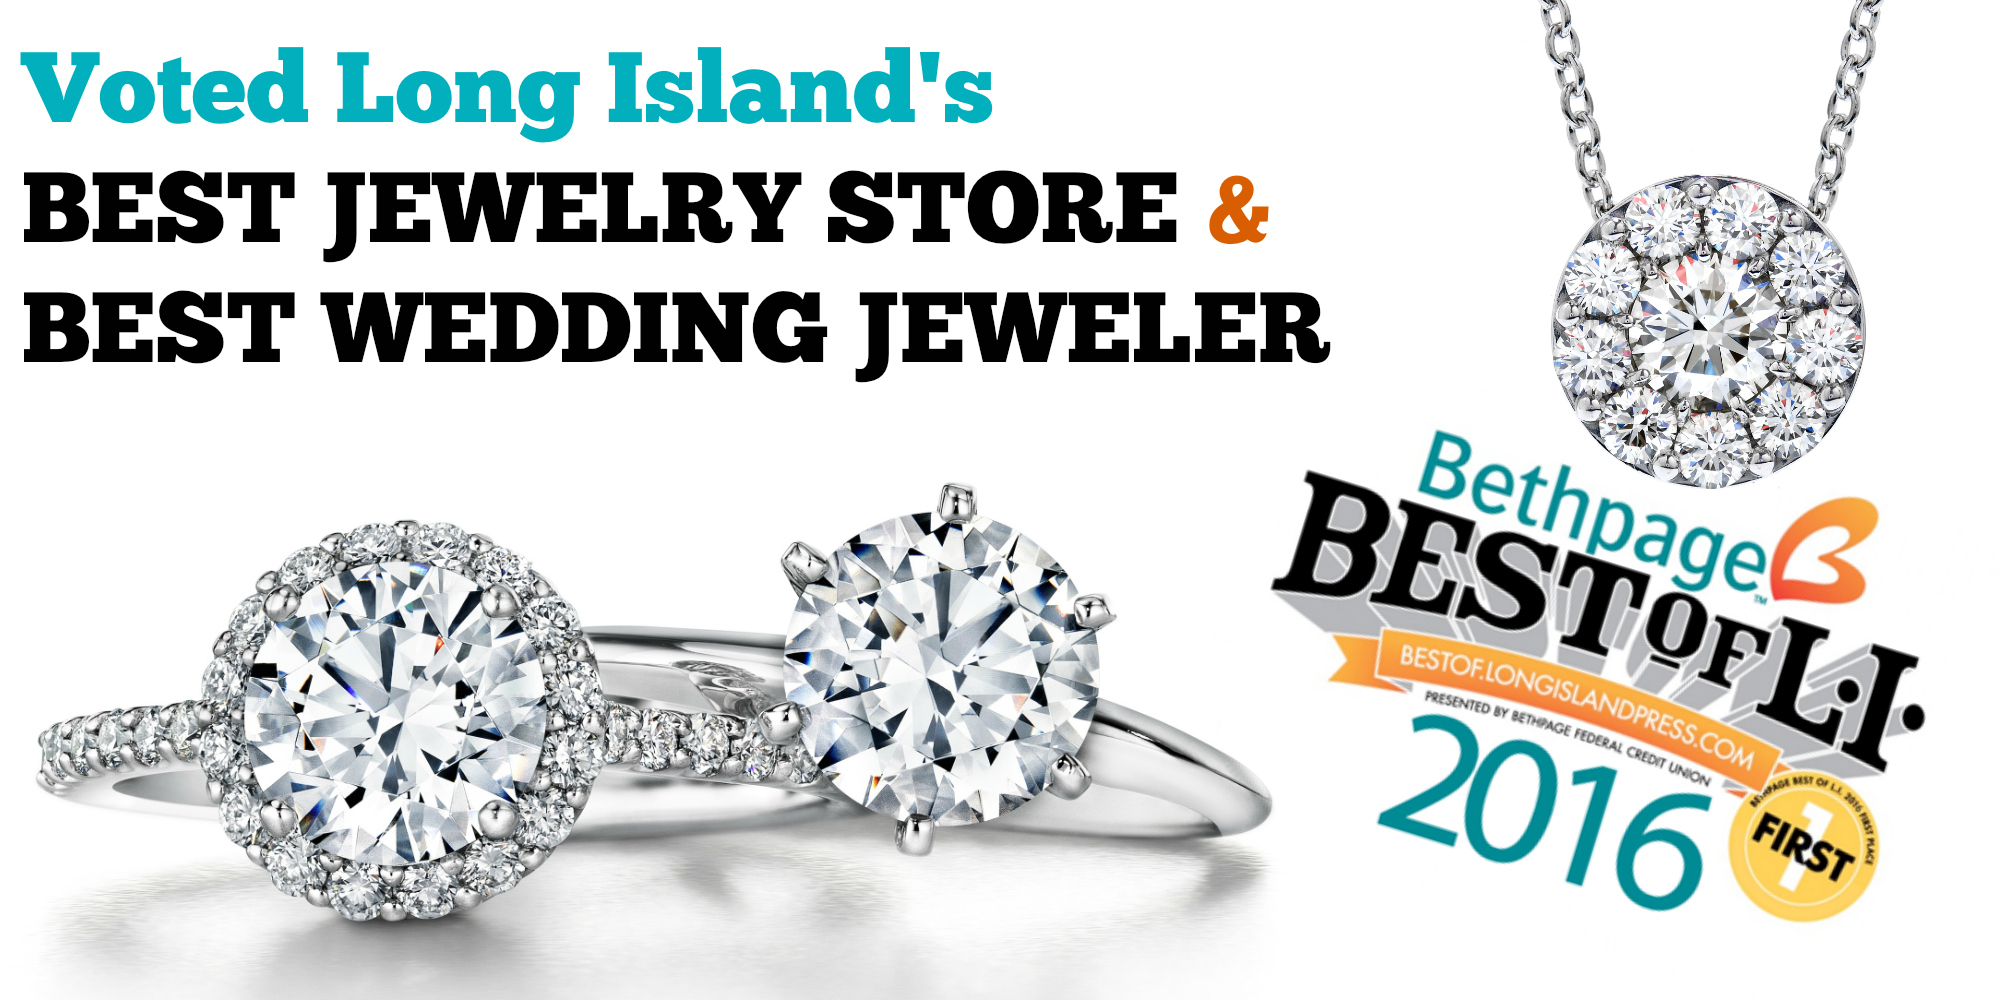 Best Jewelry Store on Long Island